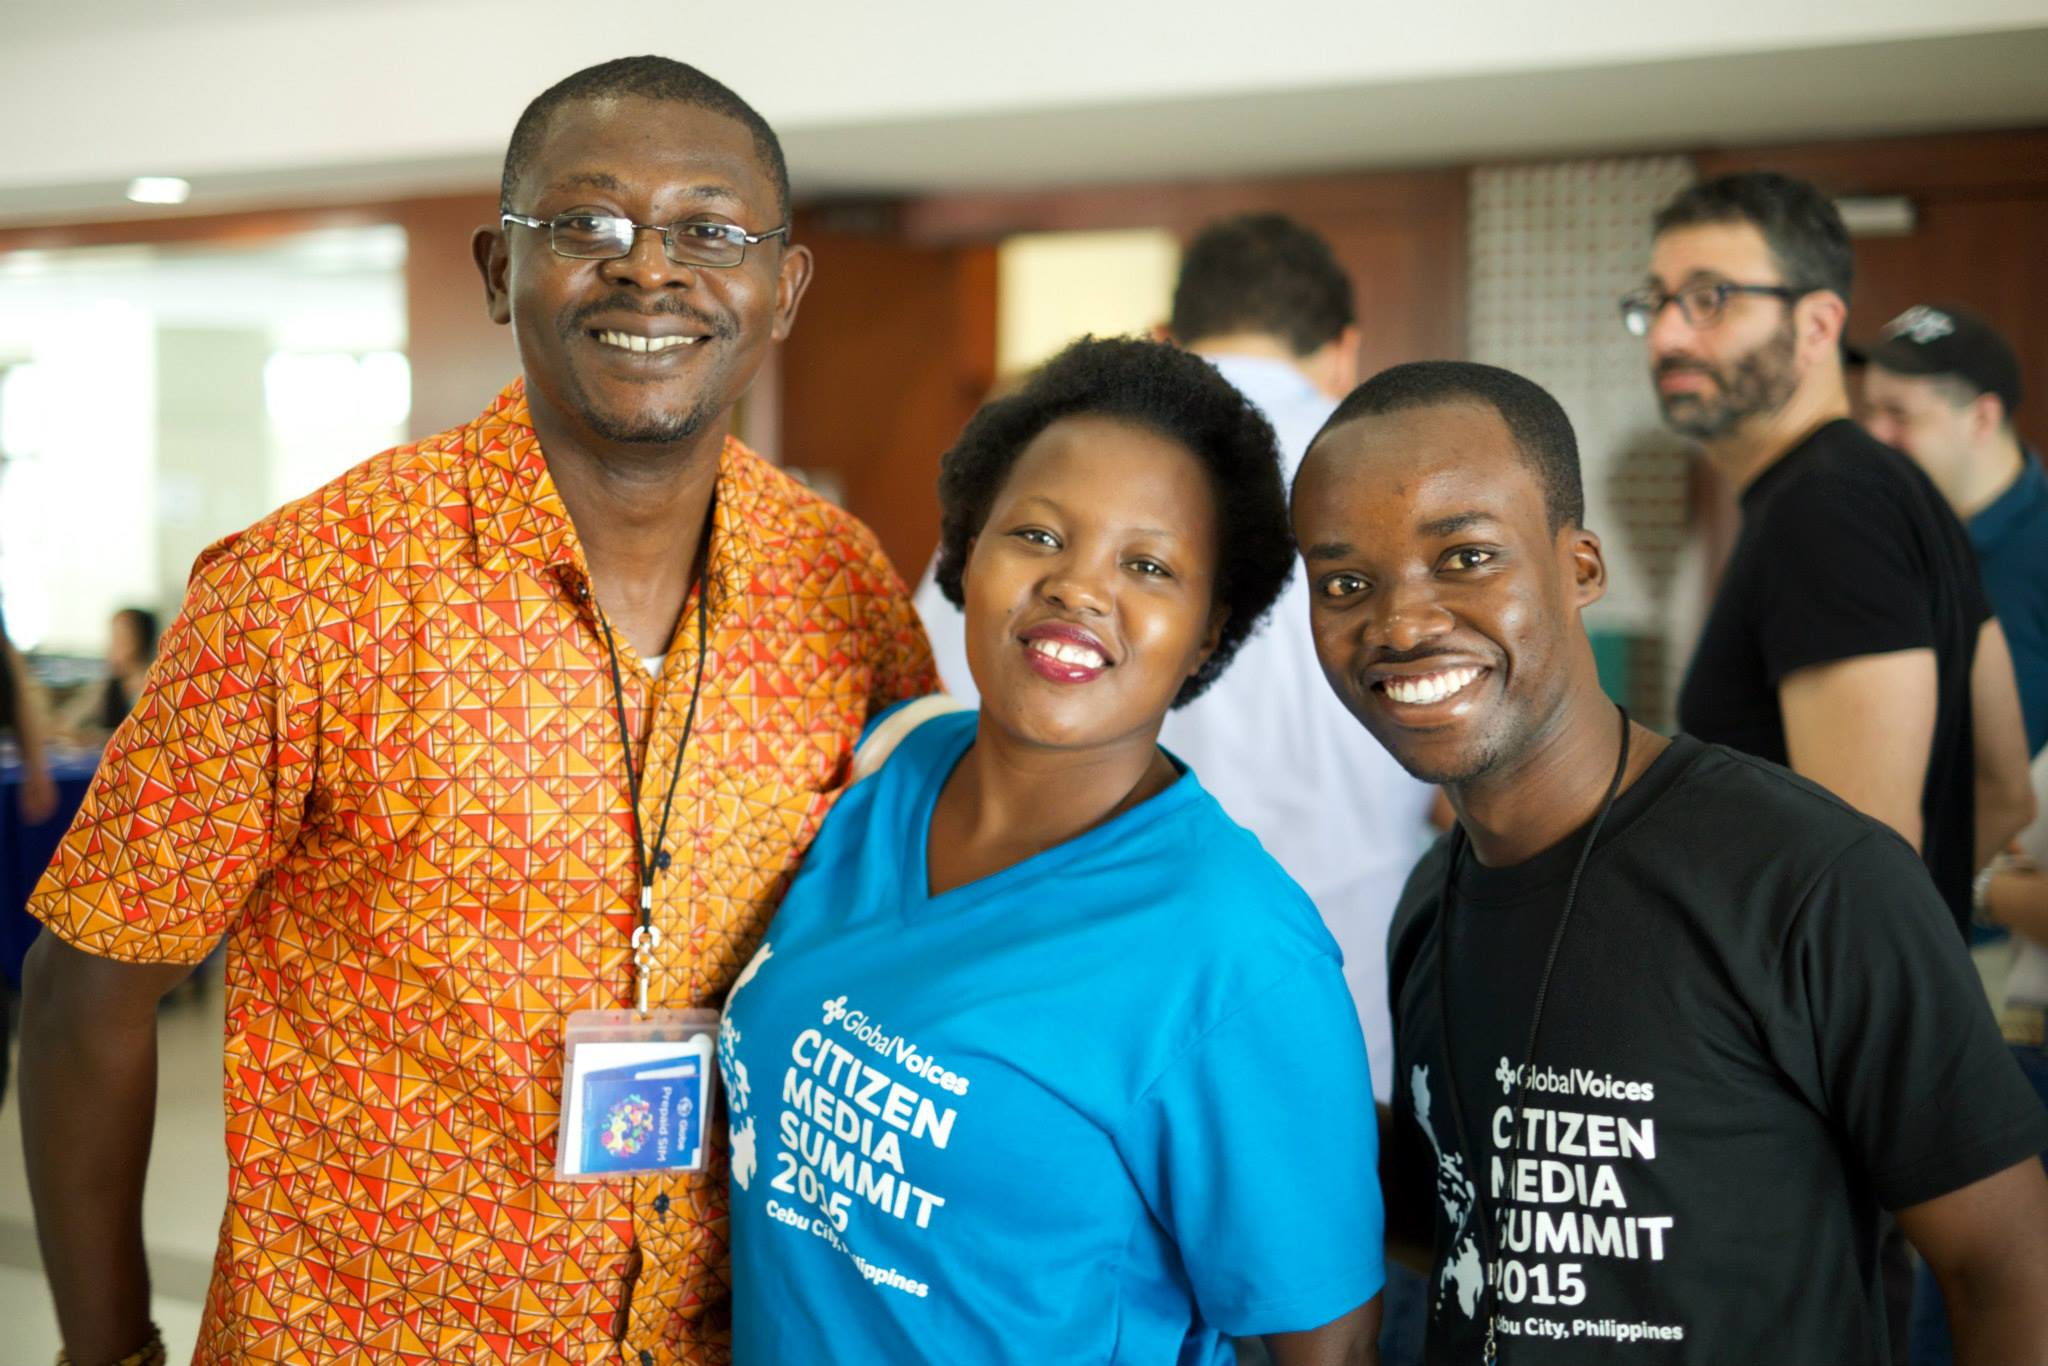 Nwach with members of GV's Africa team Prudence and Kofi. Photo by Jeremy Clarke. CC-BY-SA